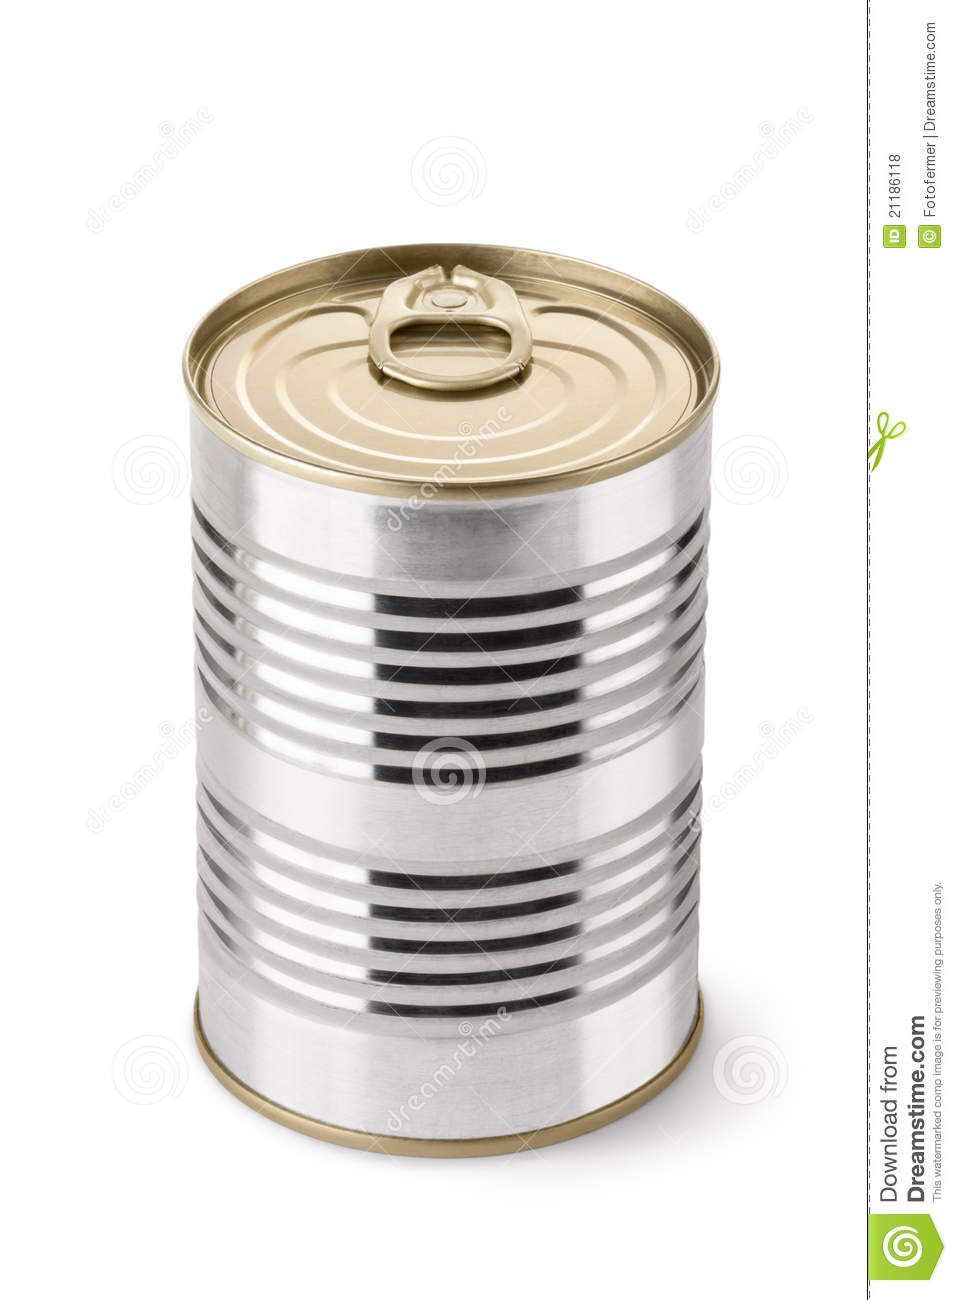 Steel can with key